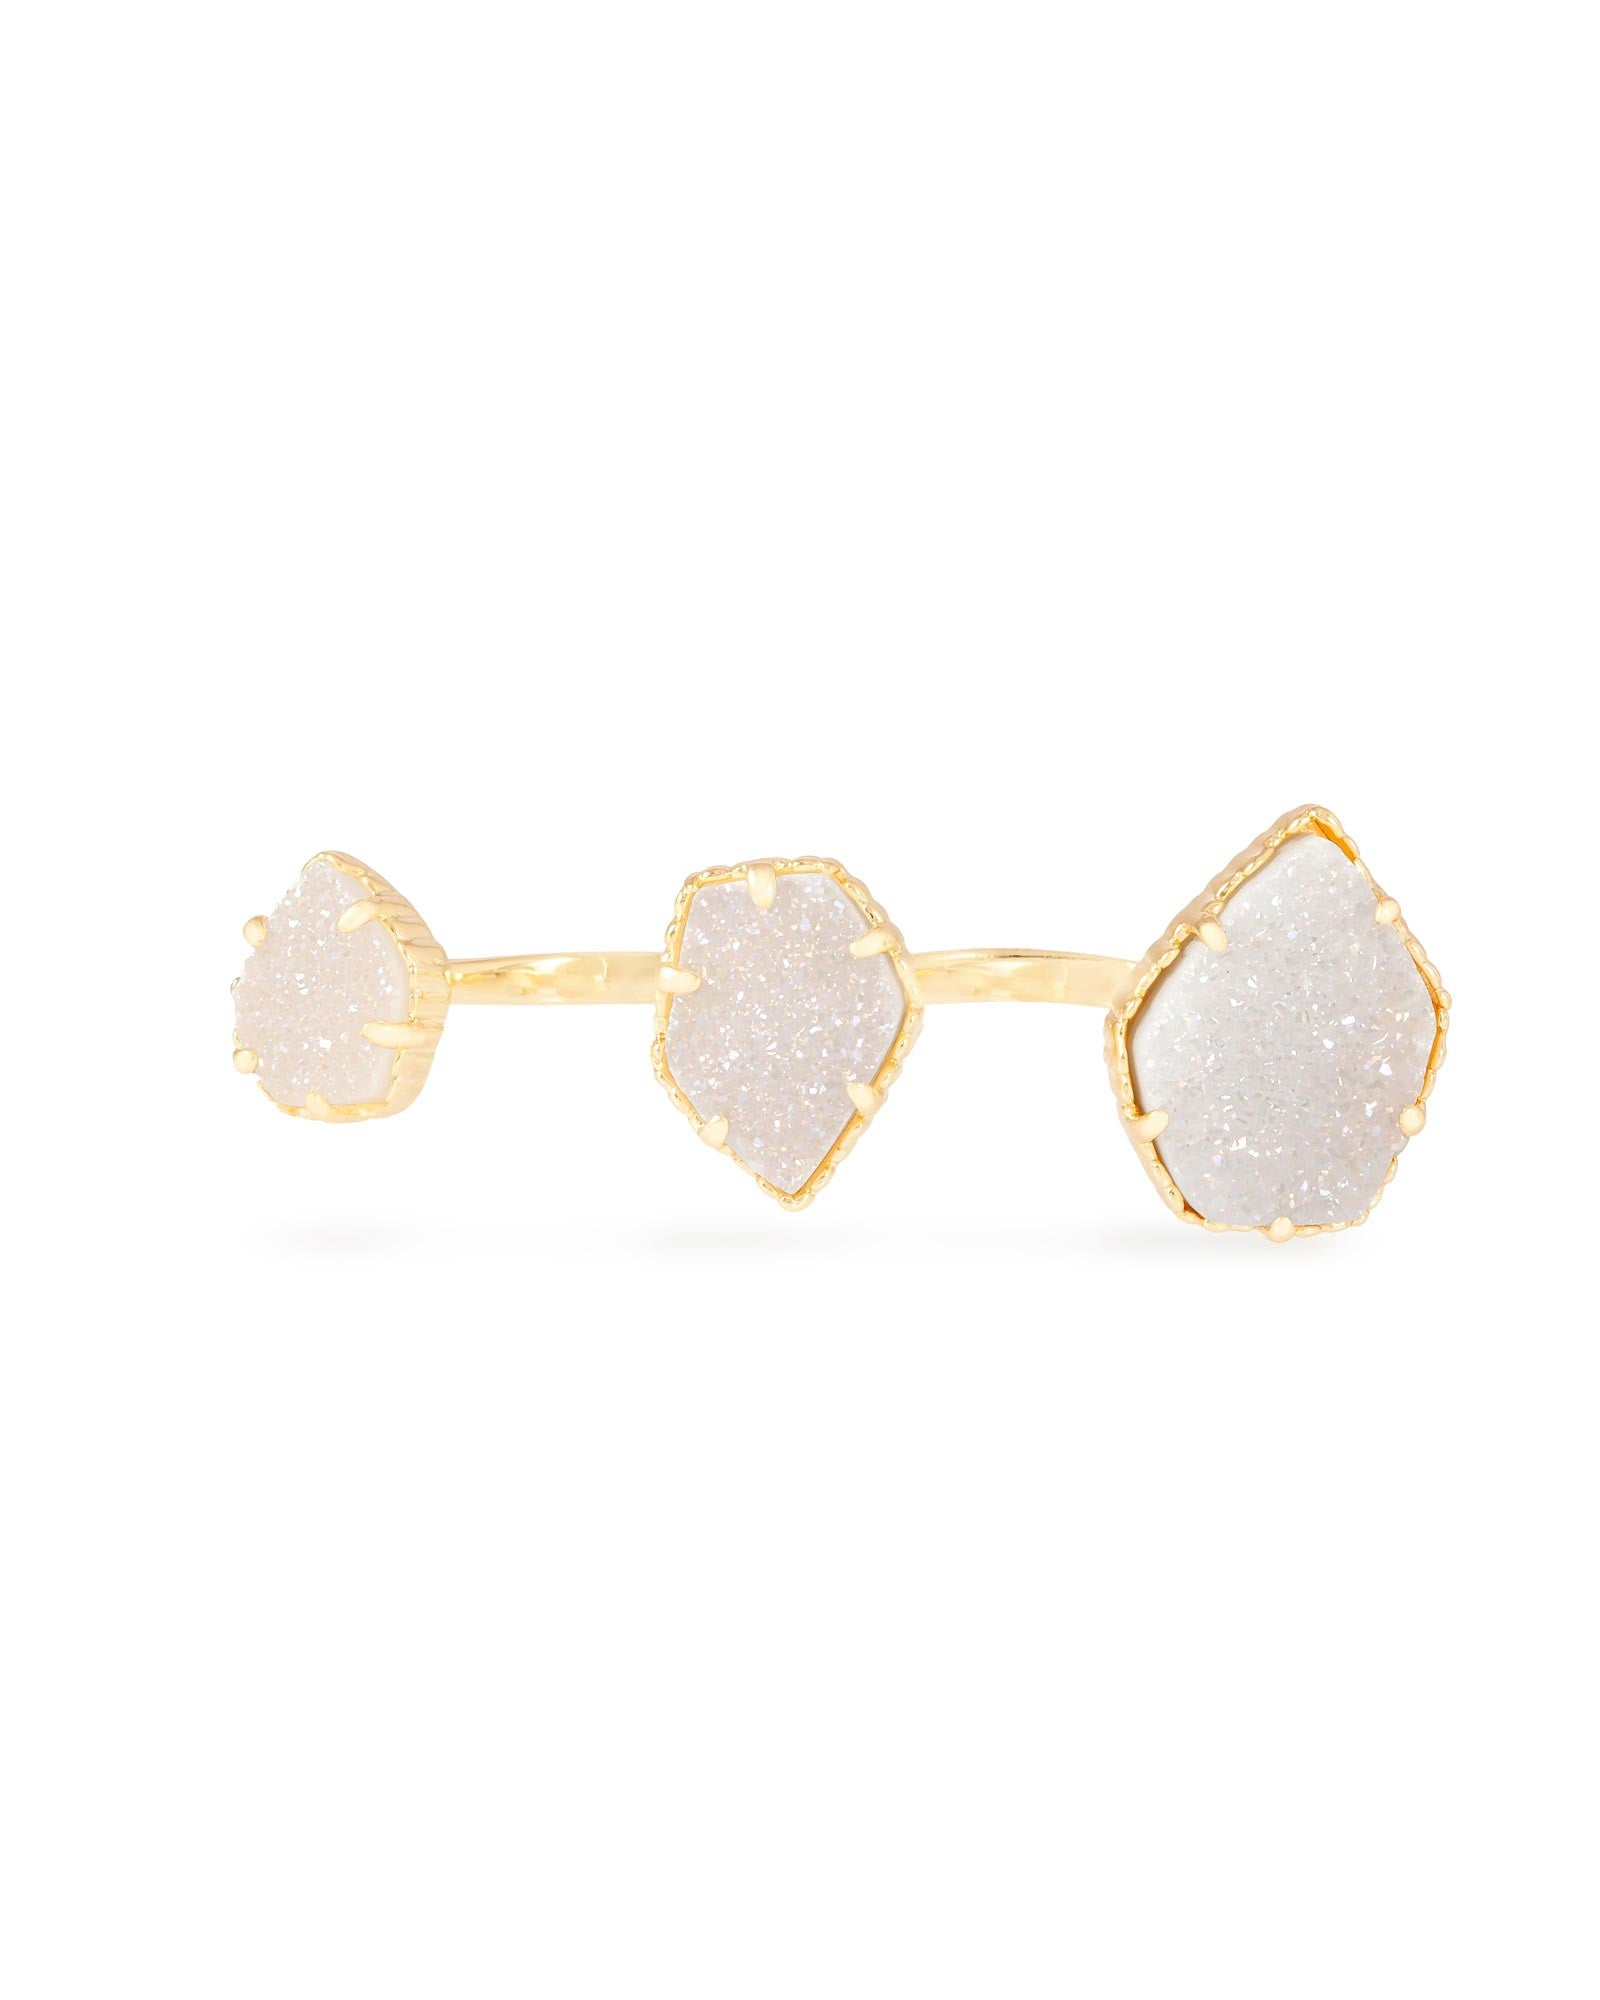 Gold Plated Plated with White Druzy Stone Knuckle Ring - CharmToSpare